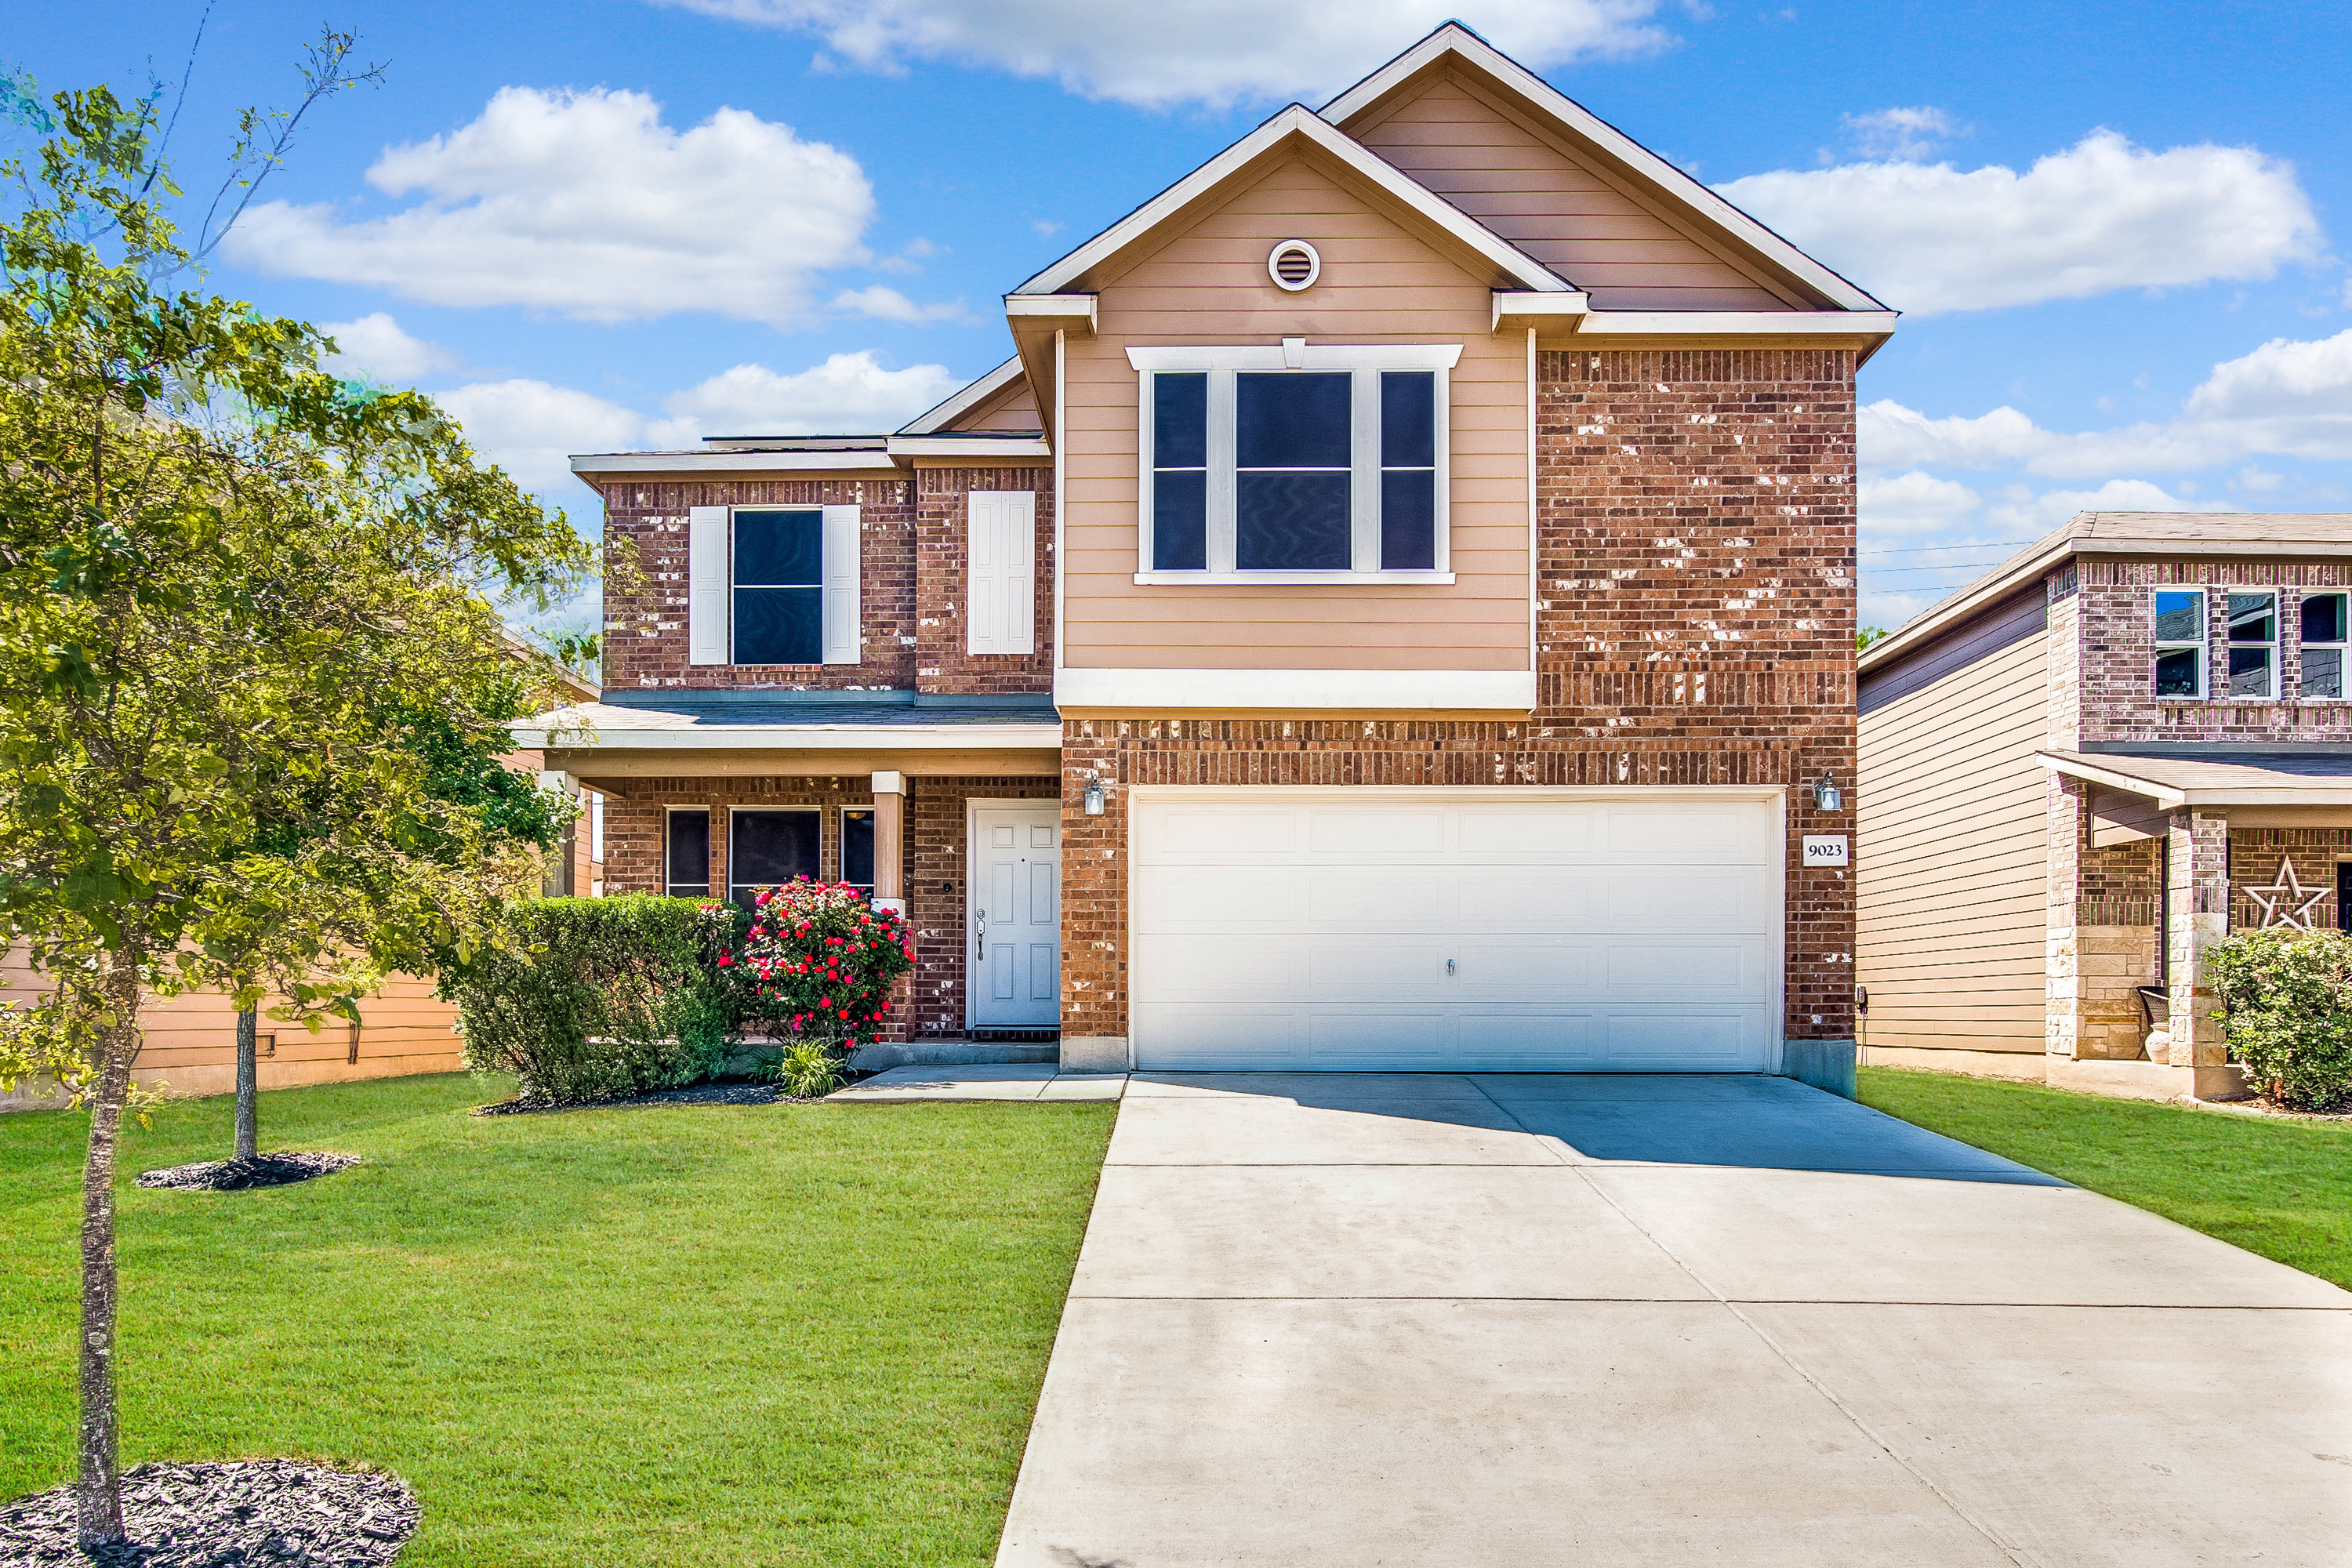 Just Listed- 4 Bedroom home in Wildhorse Vistas